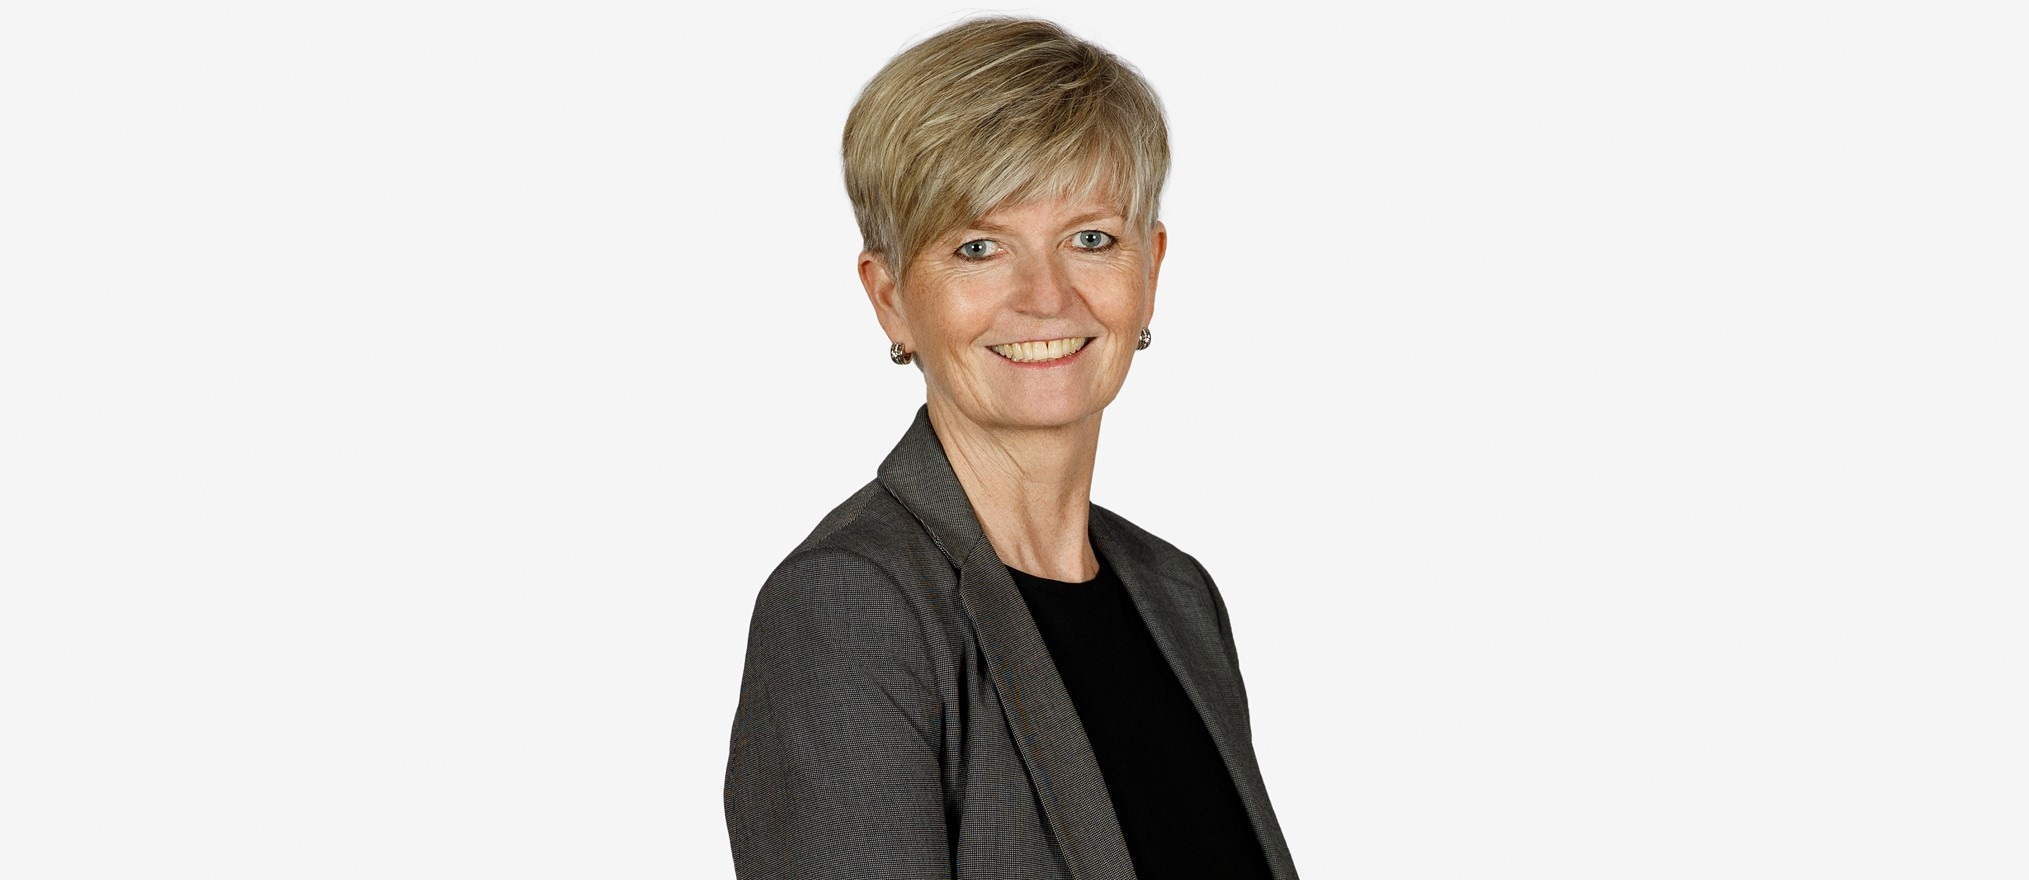 Olaug Merete Dybedal